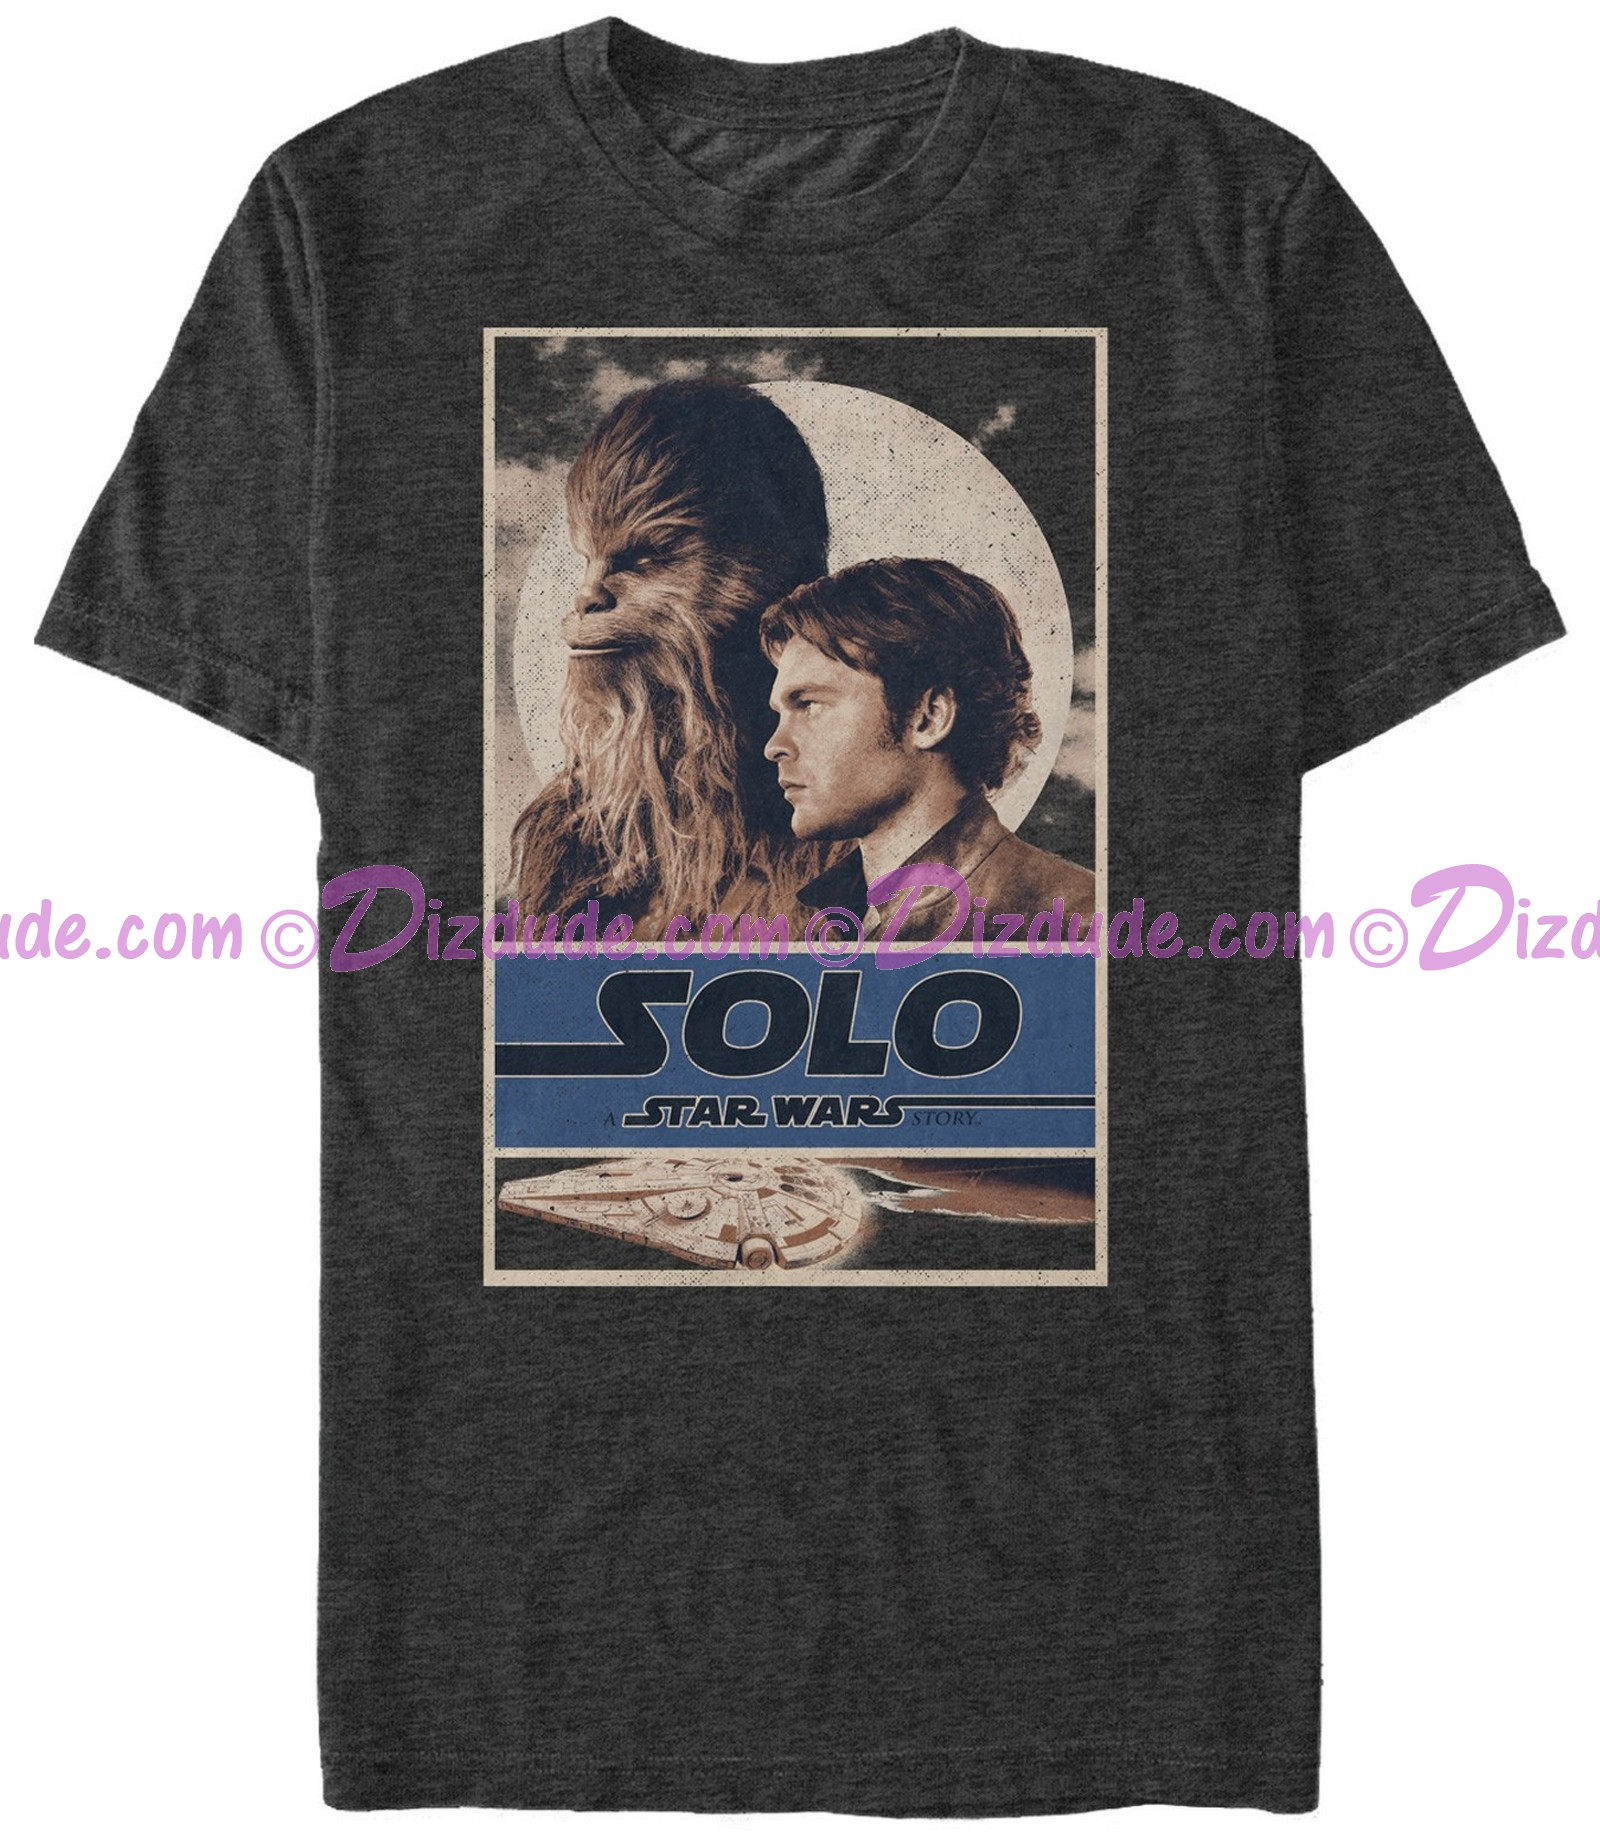 SOLO A Star Wars Story Vintage Partners In Crime Adult T-Shirt (Tshirt, T shirt or Tee)  © Dizdude.com